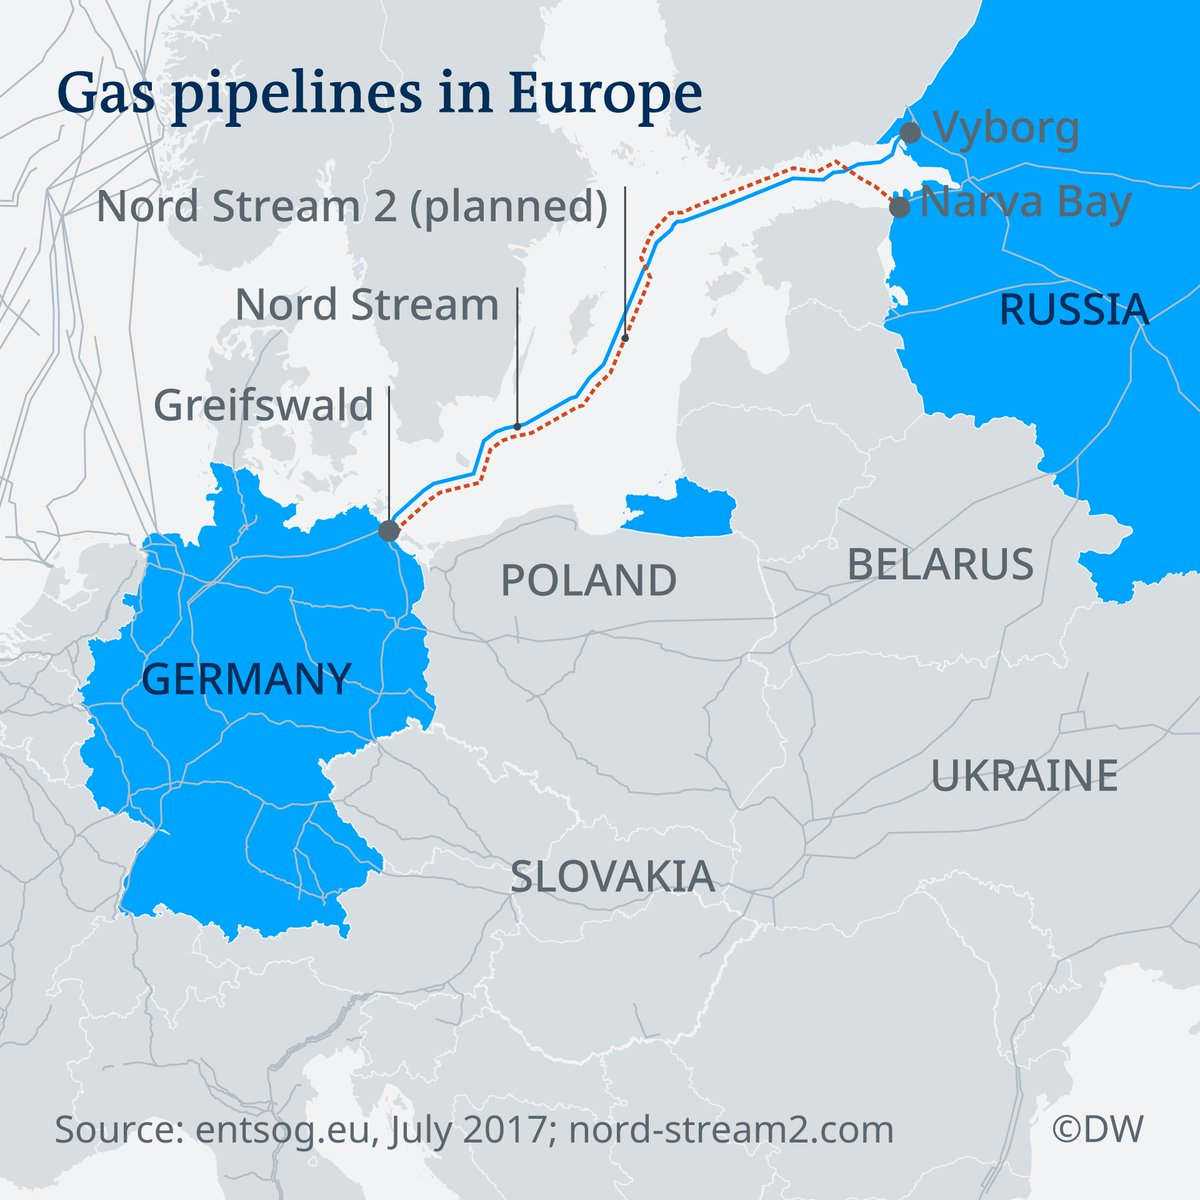 Polish President Andrzej Duda has said the planned Nord Stream 2 gas pipeline hinders the energy security of Central and Eastern Europe, and that it should not be finished.  The pipeline is expected to double Russian gas imports to Germany.  https://t.co/YmxGYoaqht